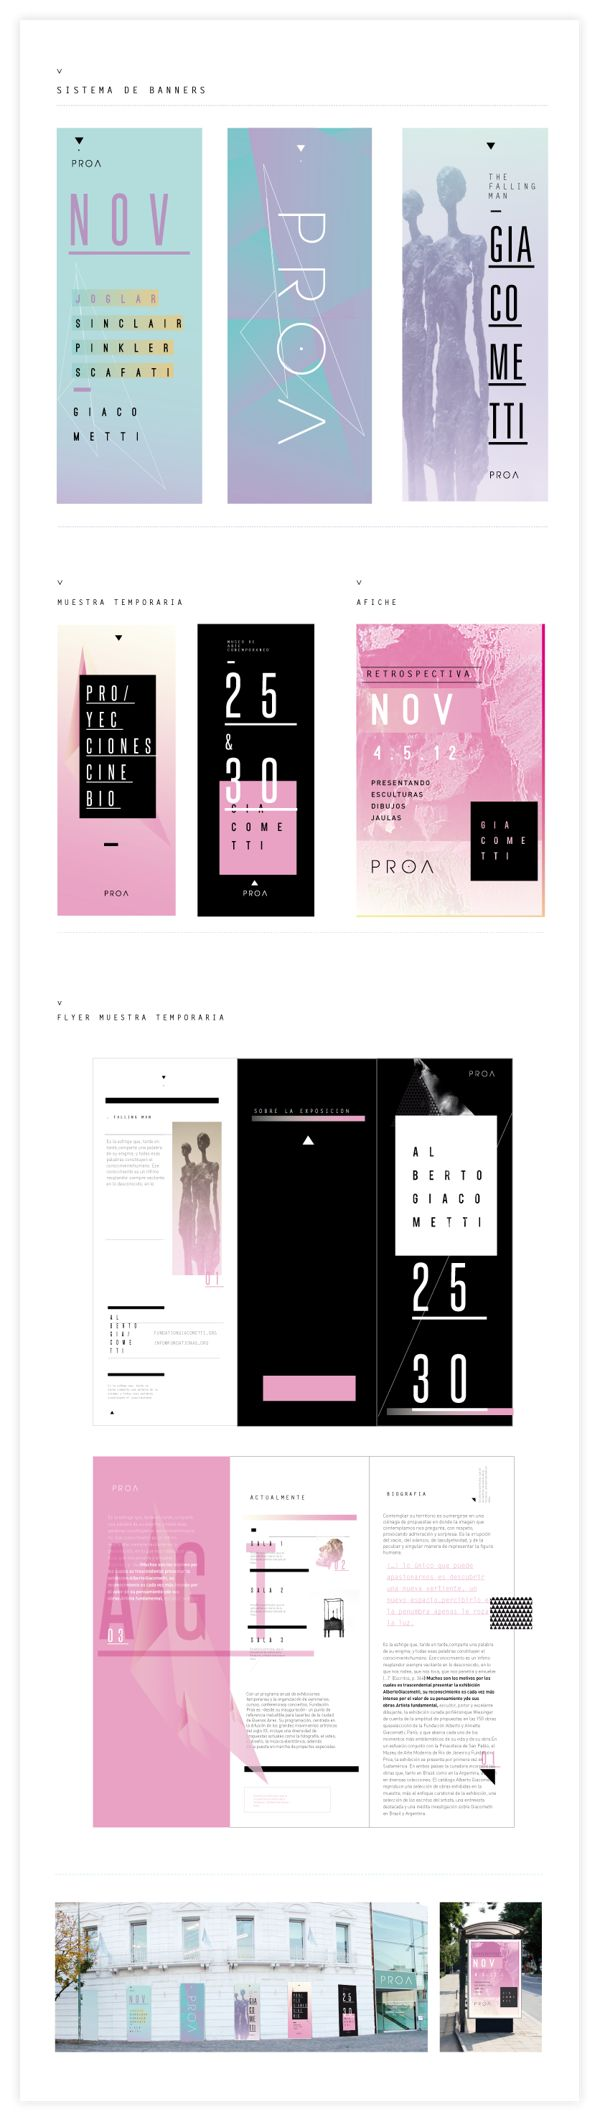 FUNDACIÓN PROA by Alejandra Tramontte, via Behance